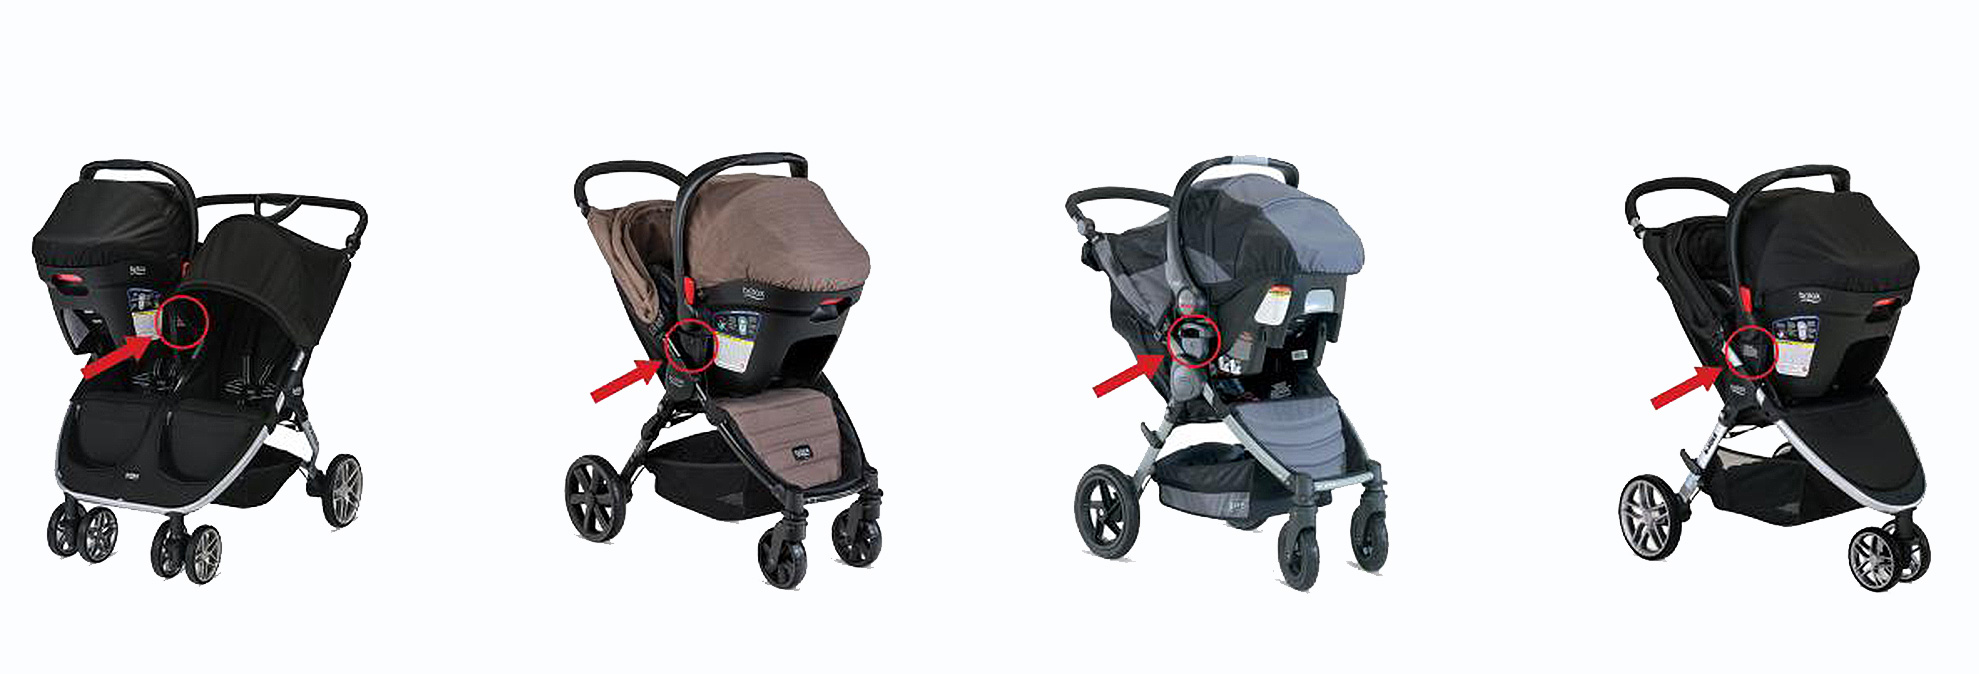 Baby cribs reviews consumer reports - Britax Recalls 700 000 Strollers After Reports Of Falls